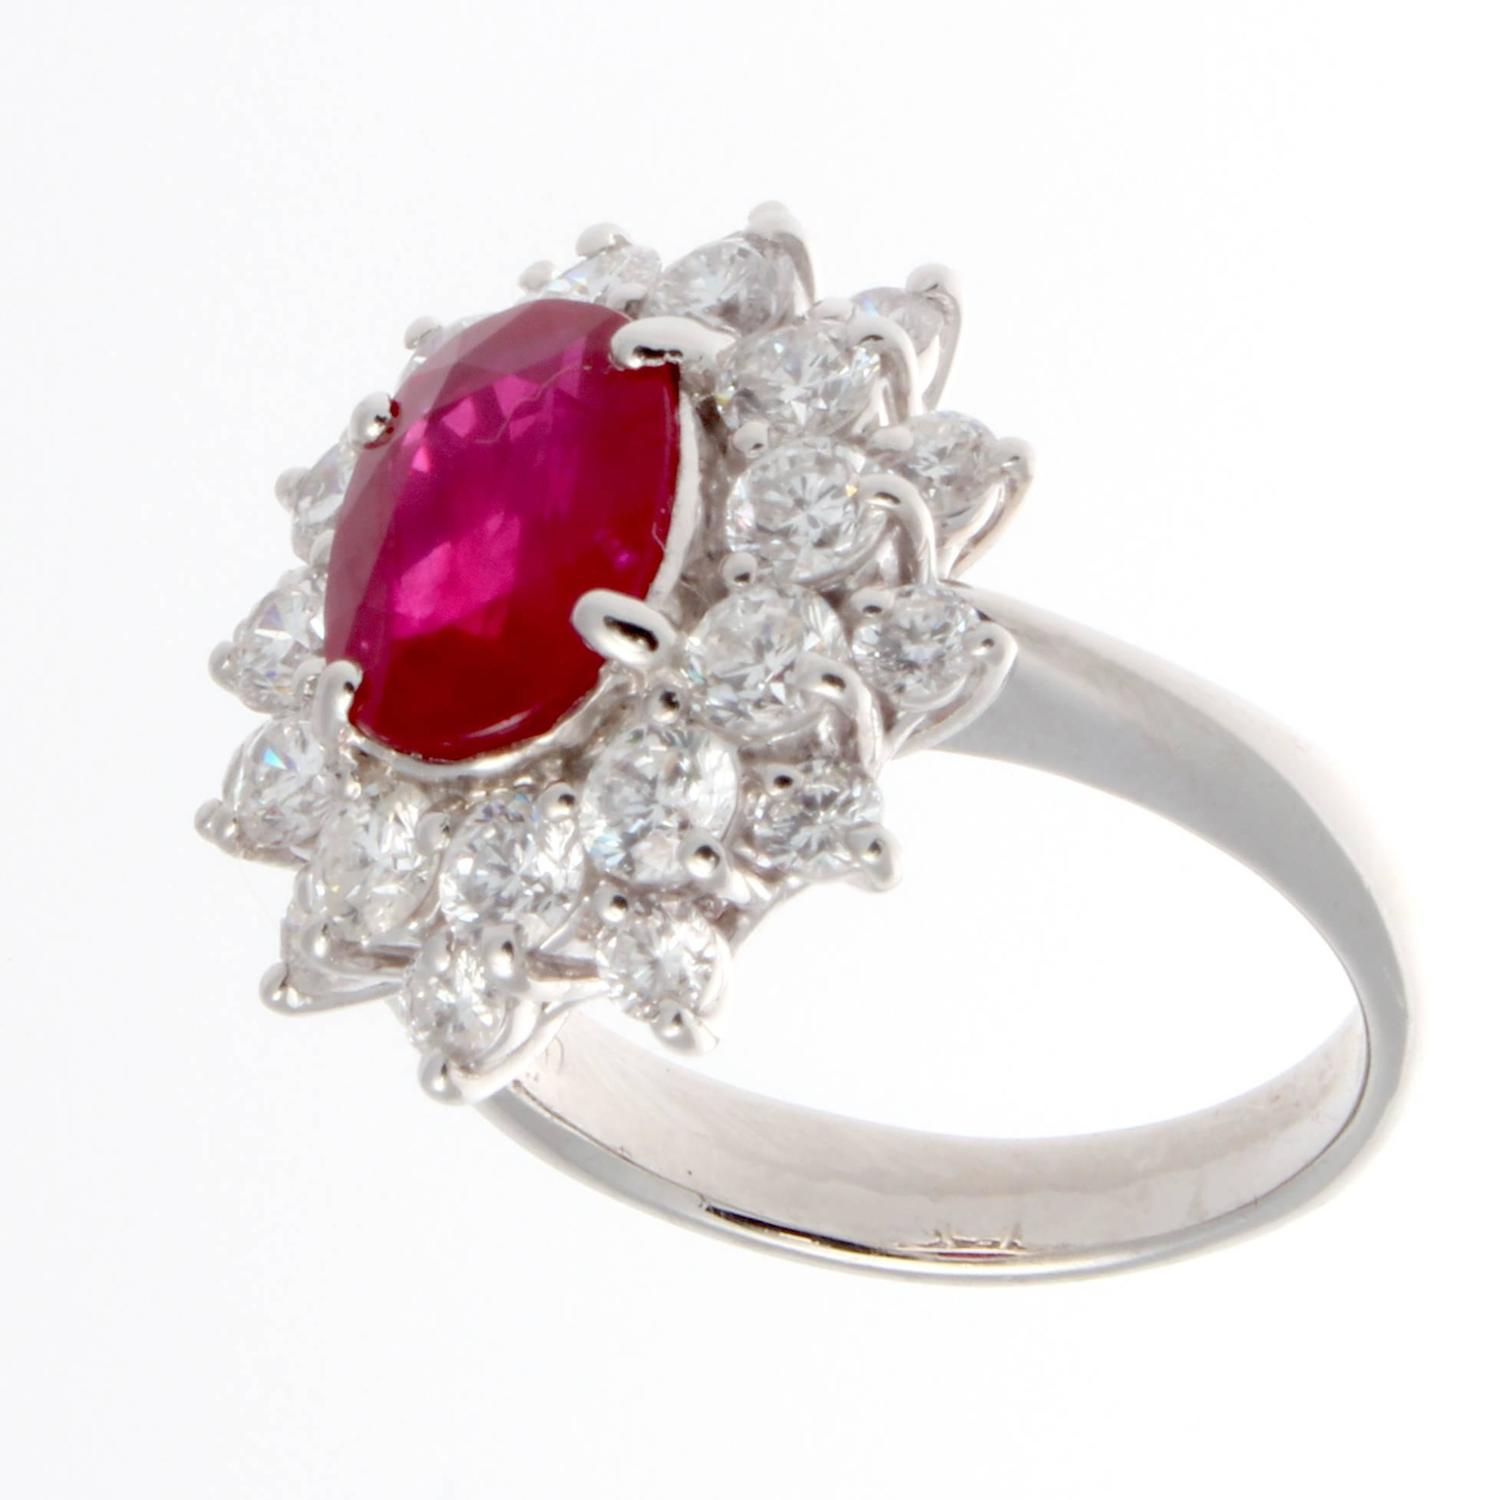 New amp Second Hand Engagement Rings  William May